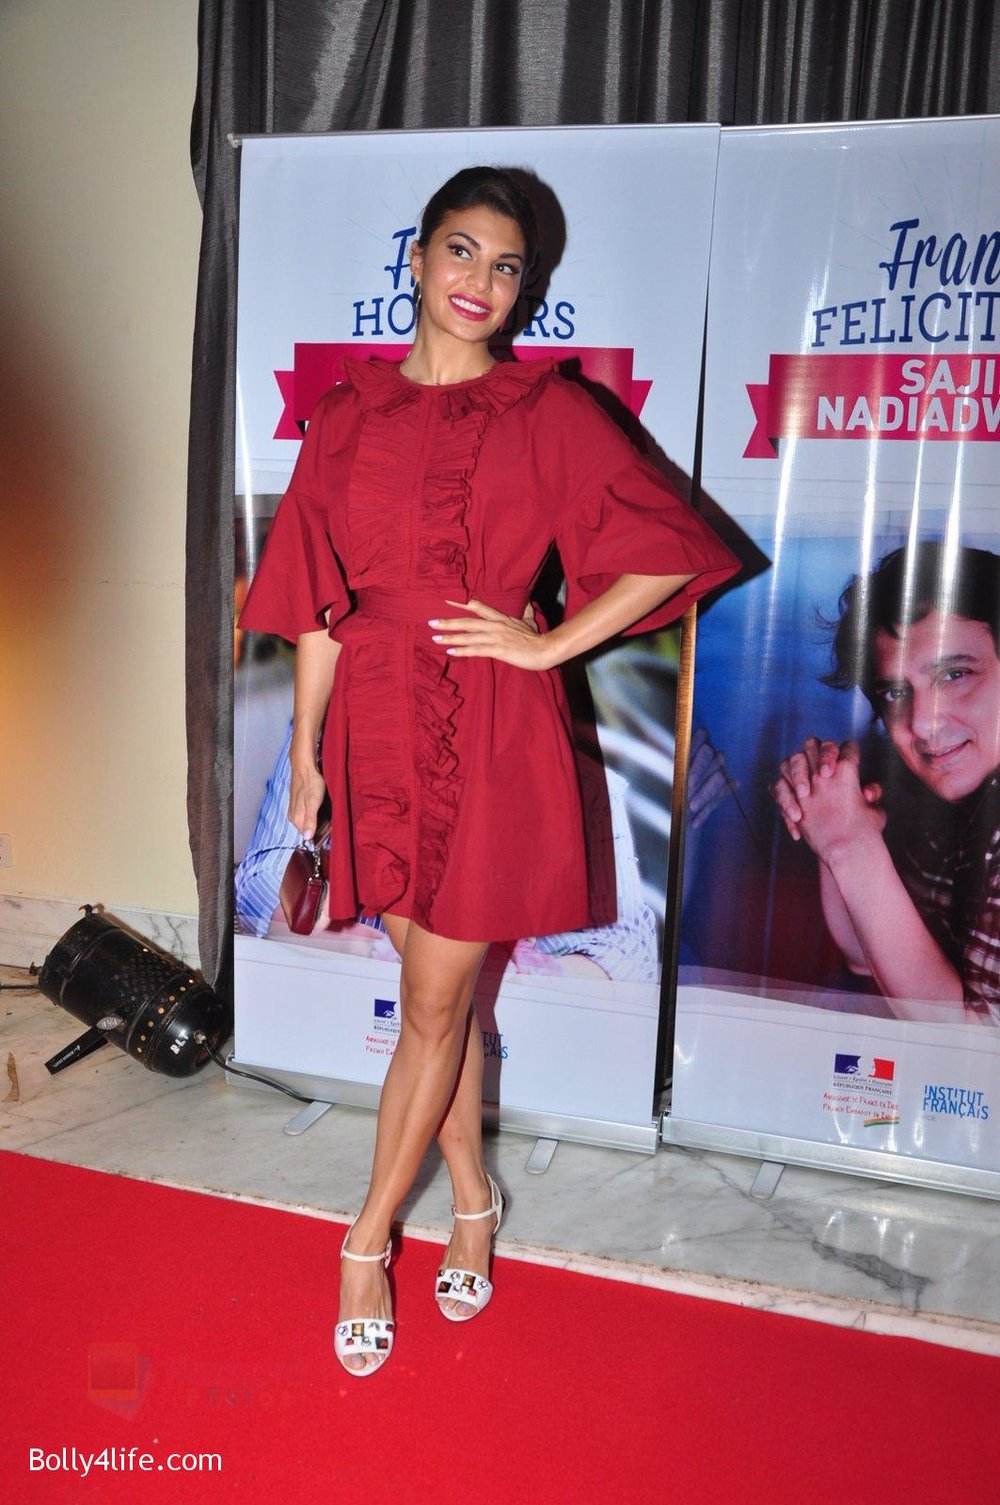 Jacqueline-Fernandez-at-the-launch-of-Sajid-Nadiadwala_s-france-honours-on-20th-Sept-2016-105.jpg